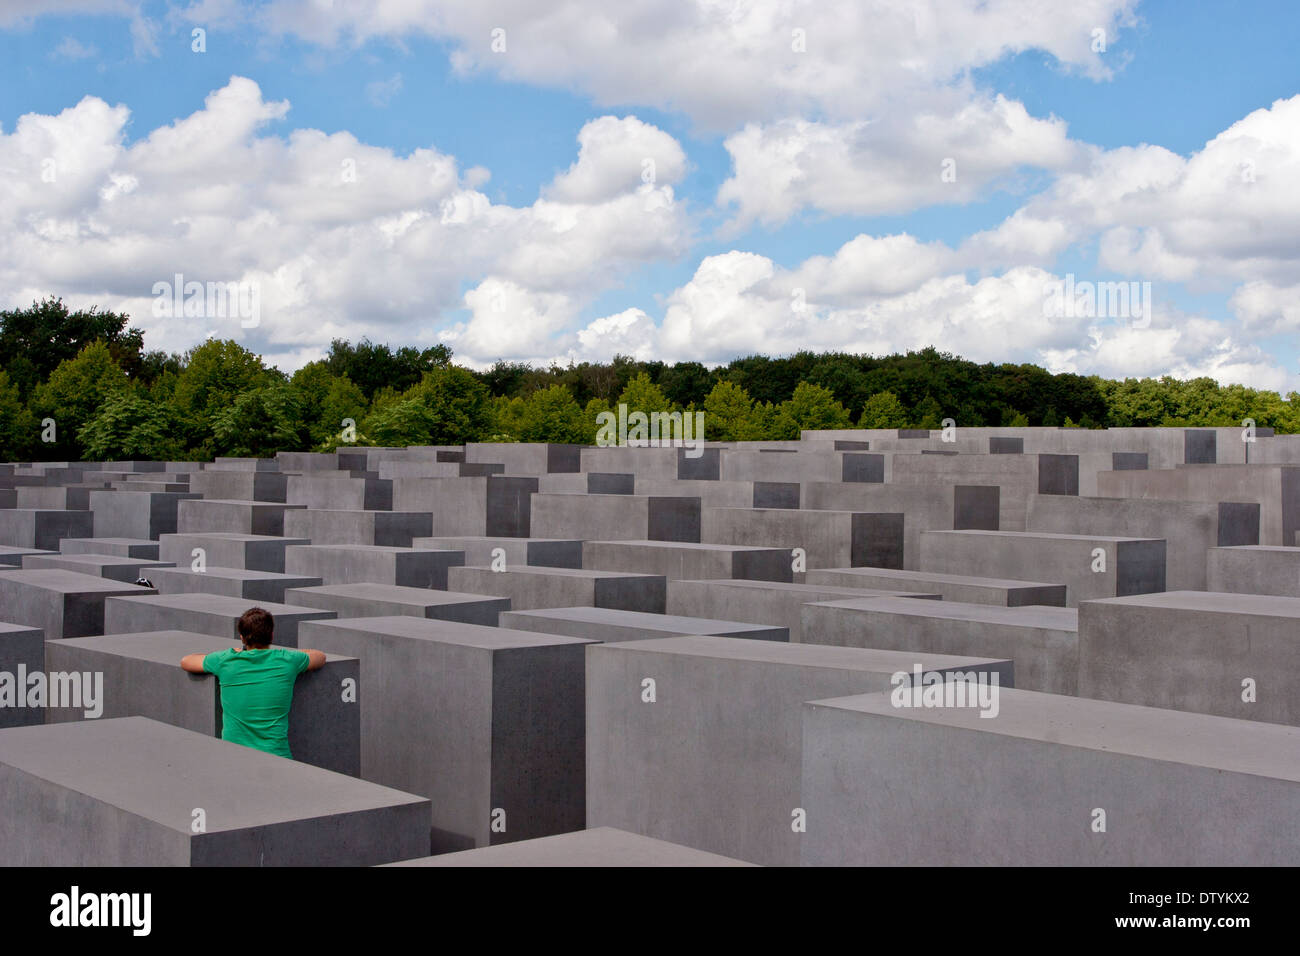 A visitor in the Memorial to the Murdered Jews of Europe (also known as the Holocaust Memorial), in Berlin, Germany. - Stock Image